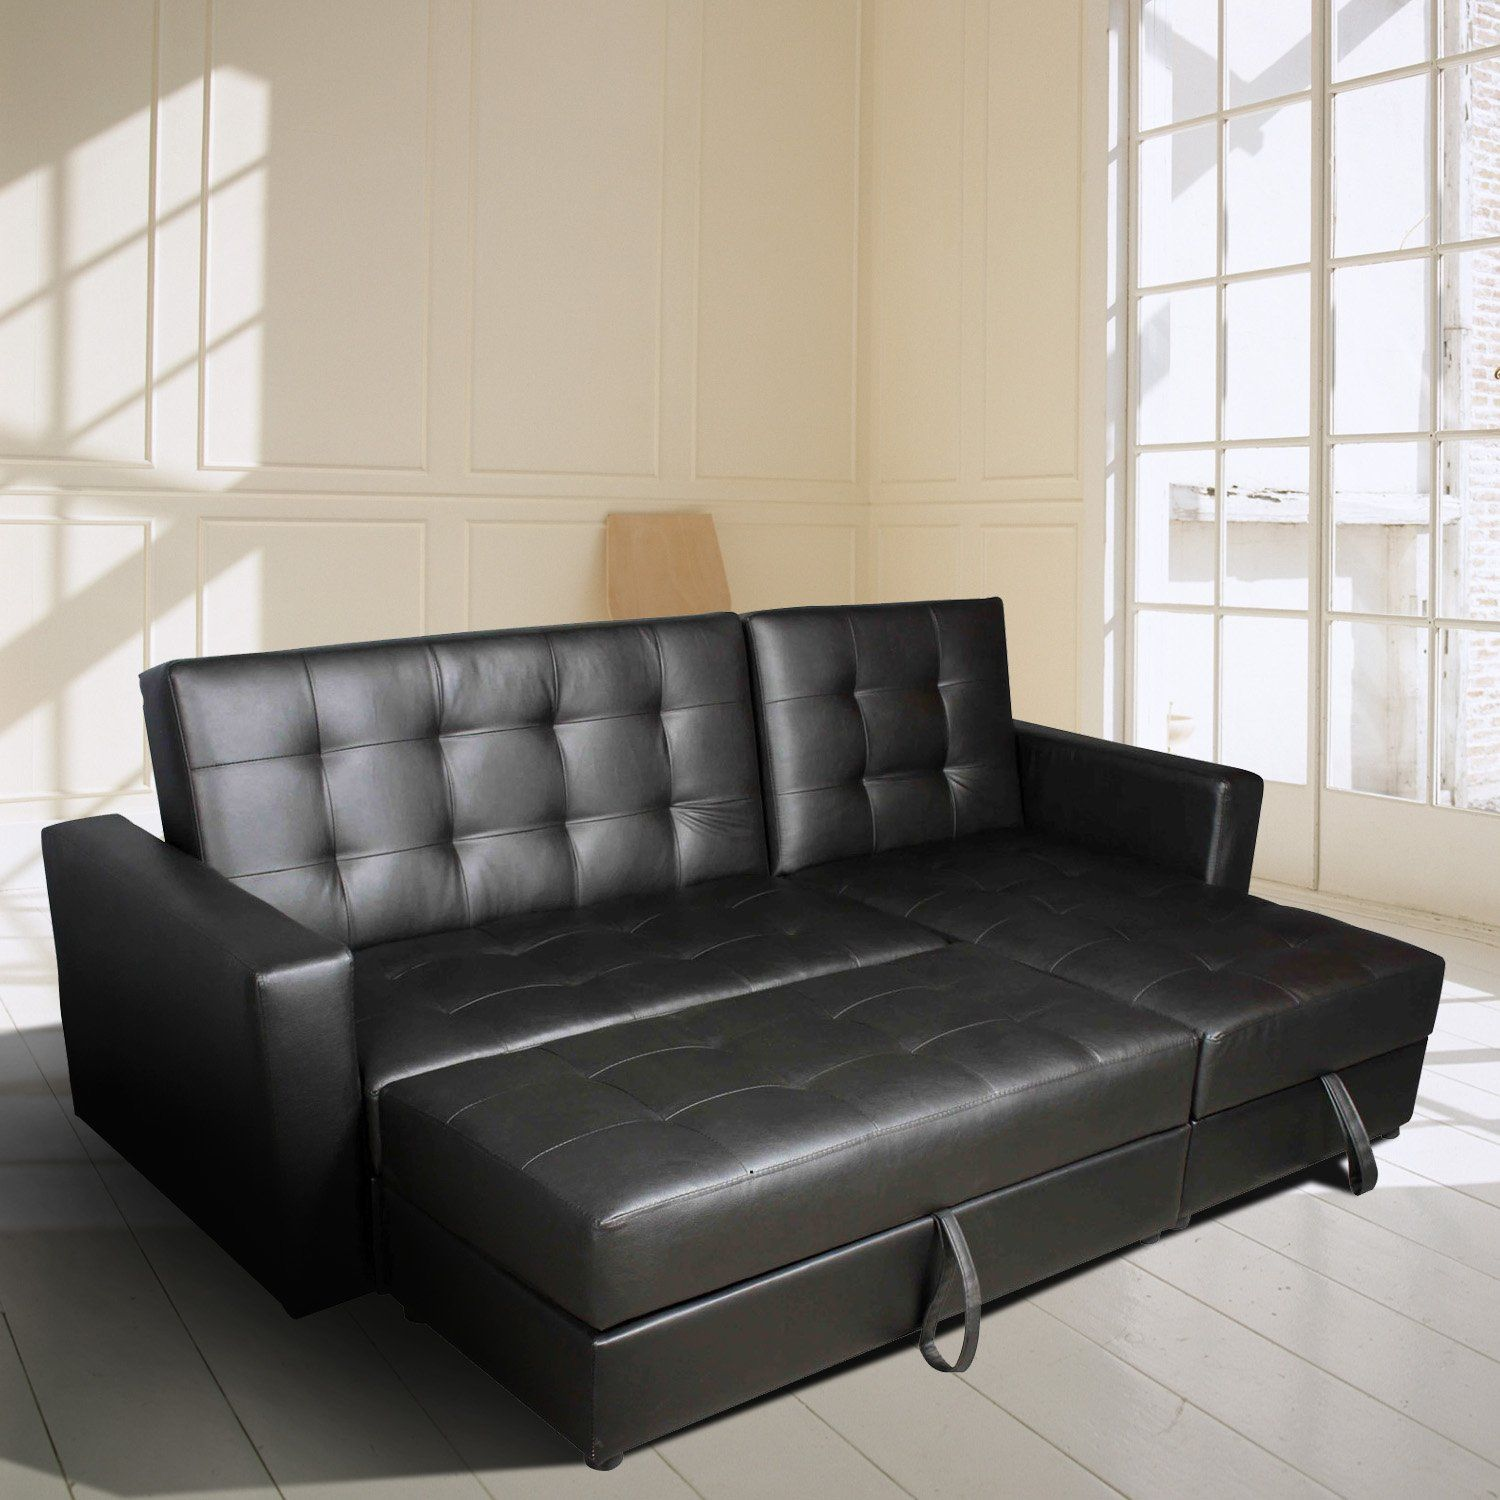 Hom Button Tufted Sofa Bed Set Sectional Daybed Storage Box